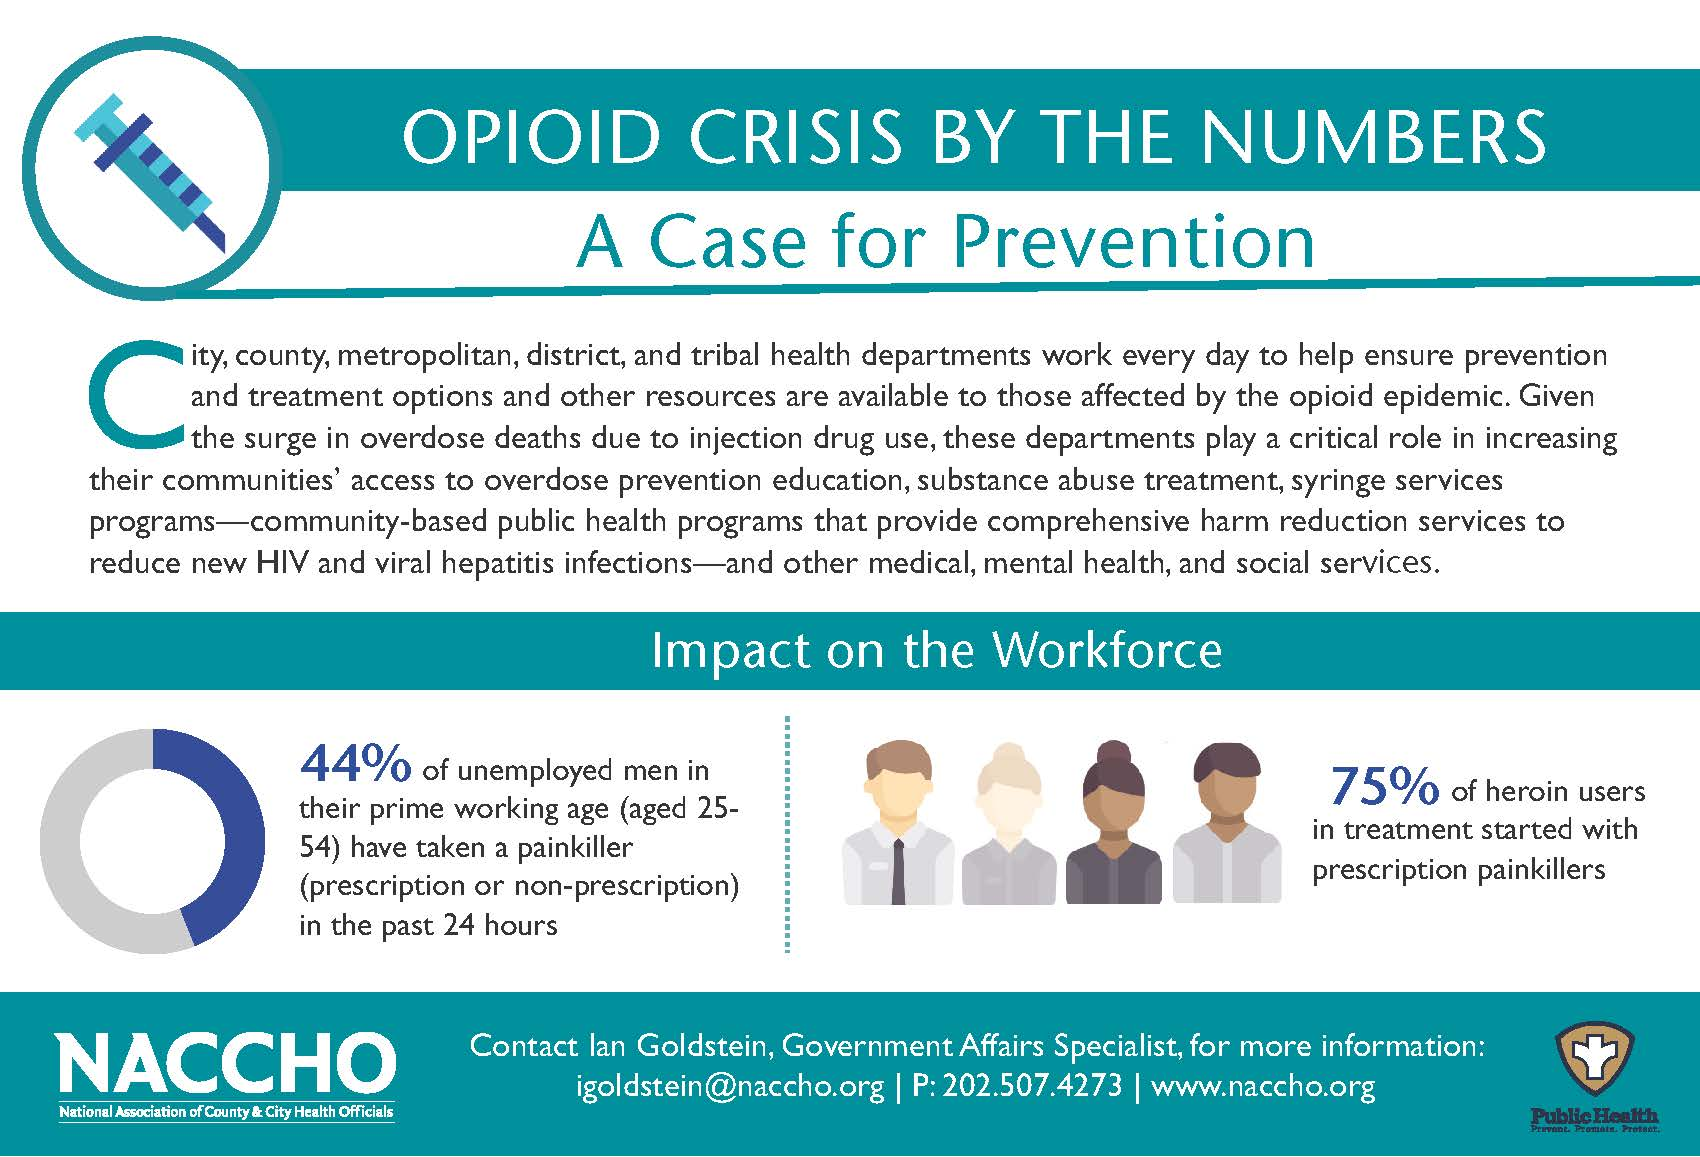 This infographic by the National Association of County and City Health Officials shows how most heroin users start, and the connection between opioids and lost productivity.